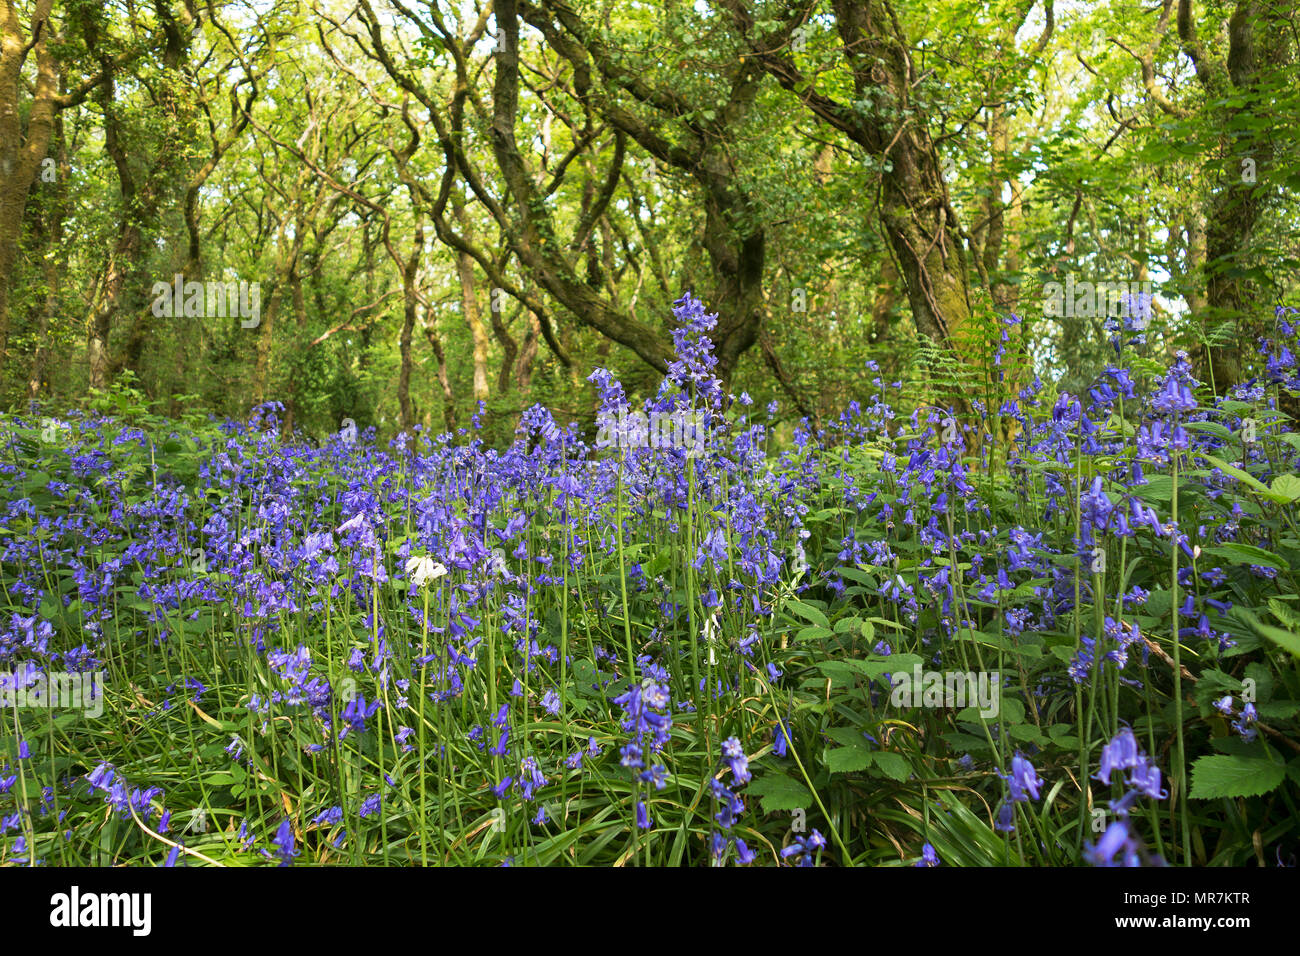 spanish bluebells growing in an ancient oak woodland, unity woods, cornwall, england, uk. - Stock Image